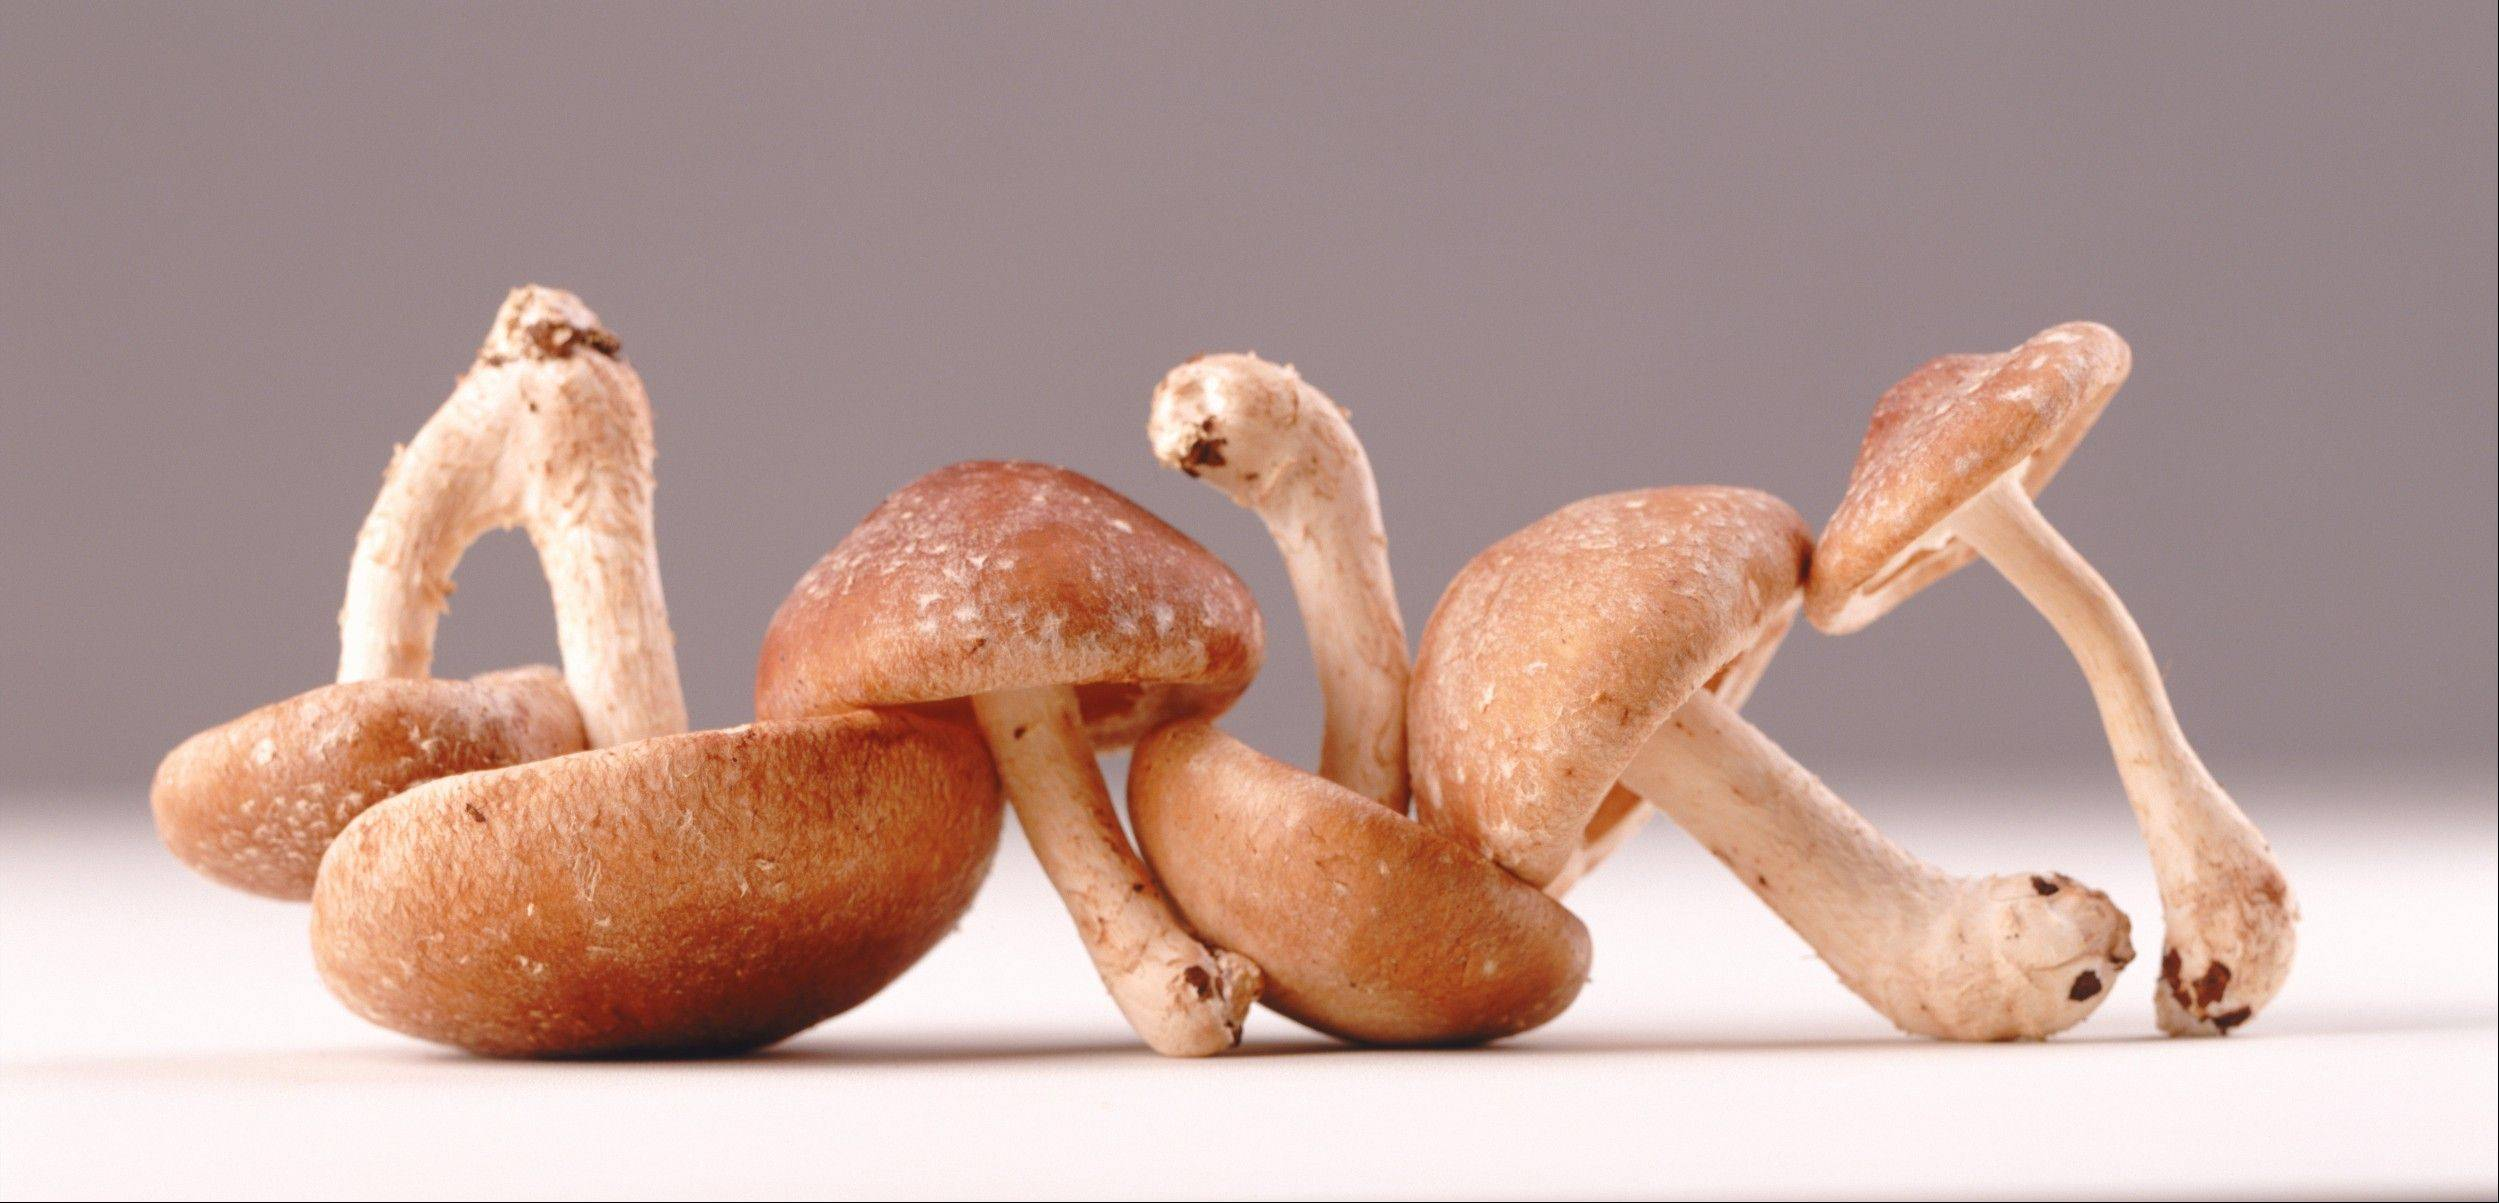 Shiitake stems are tough and should be trimmed before cooking.